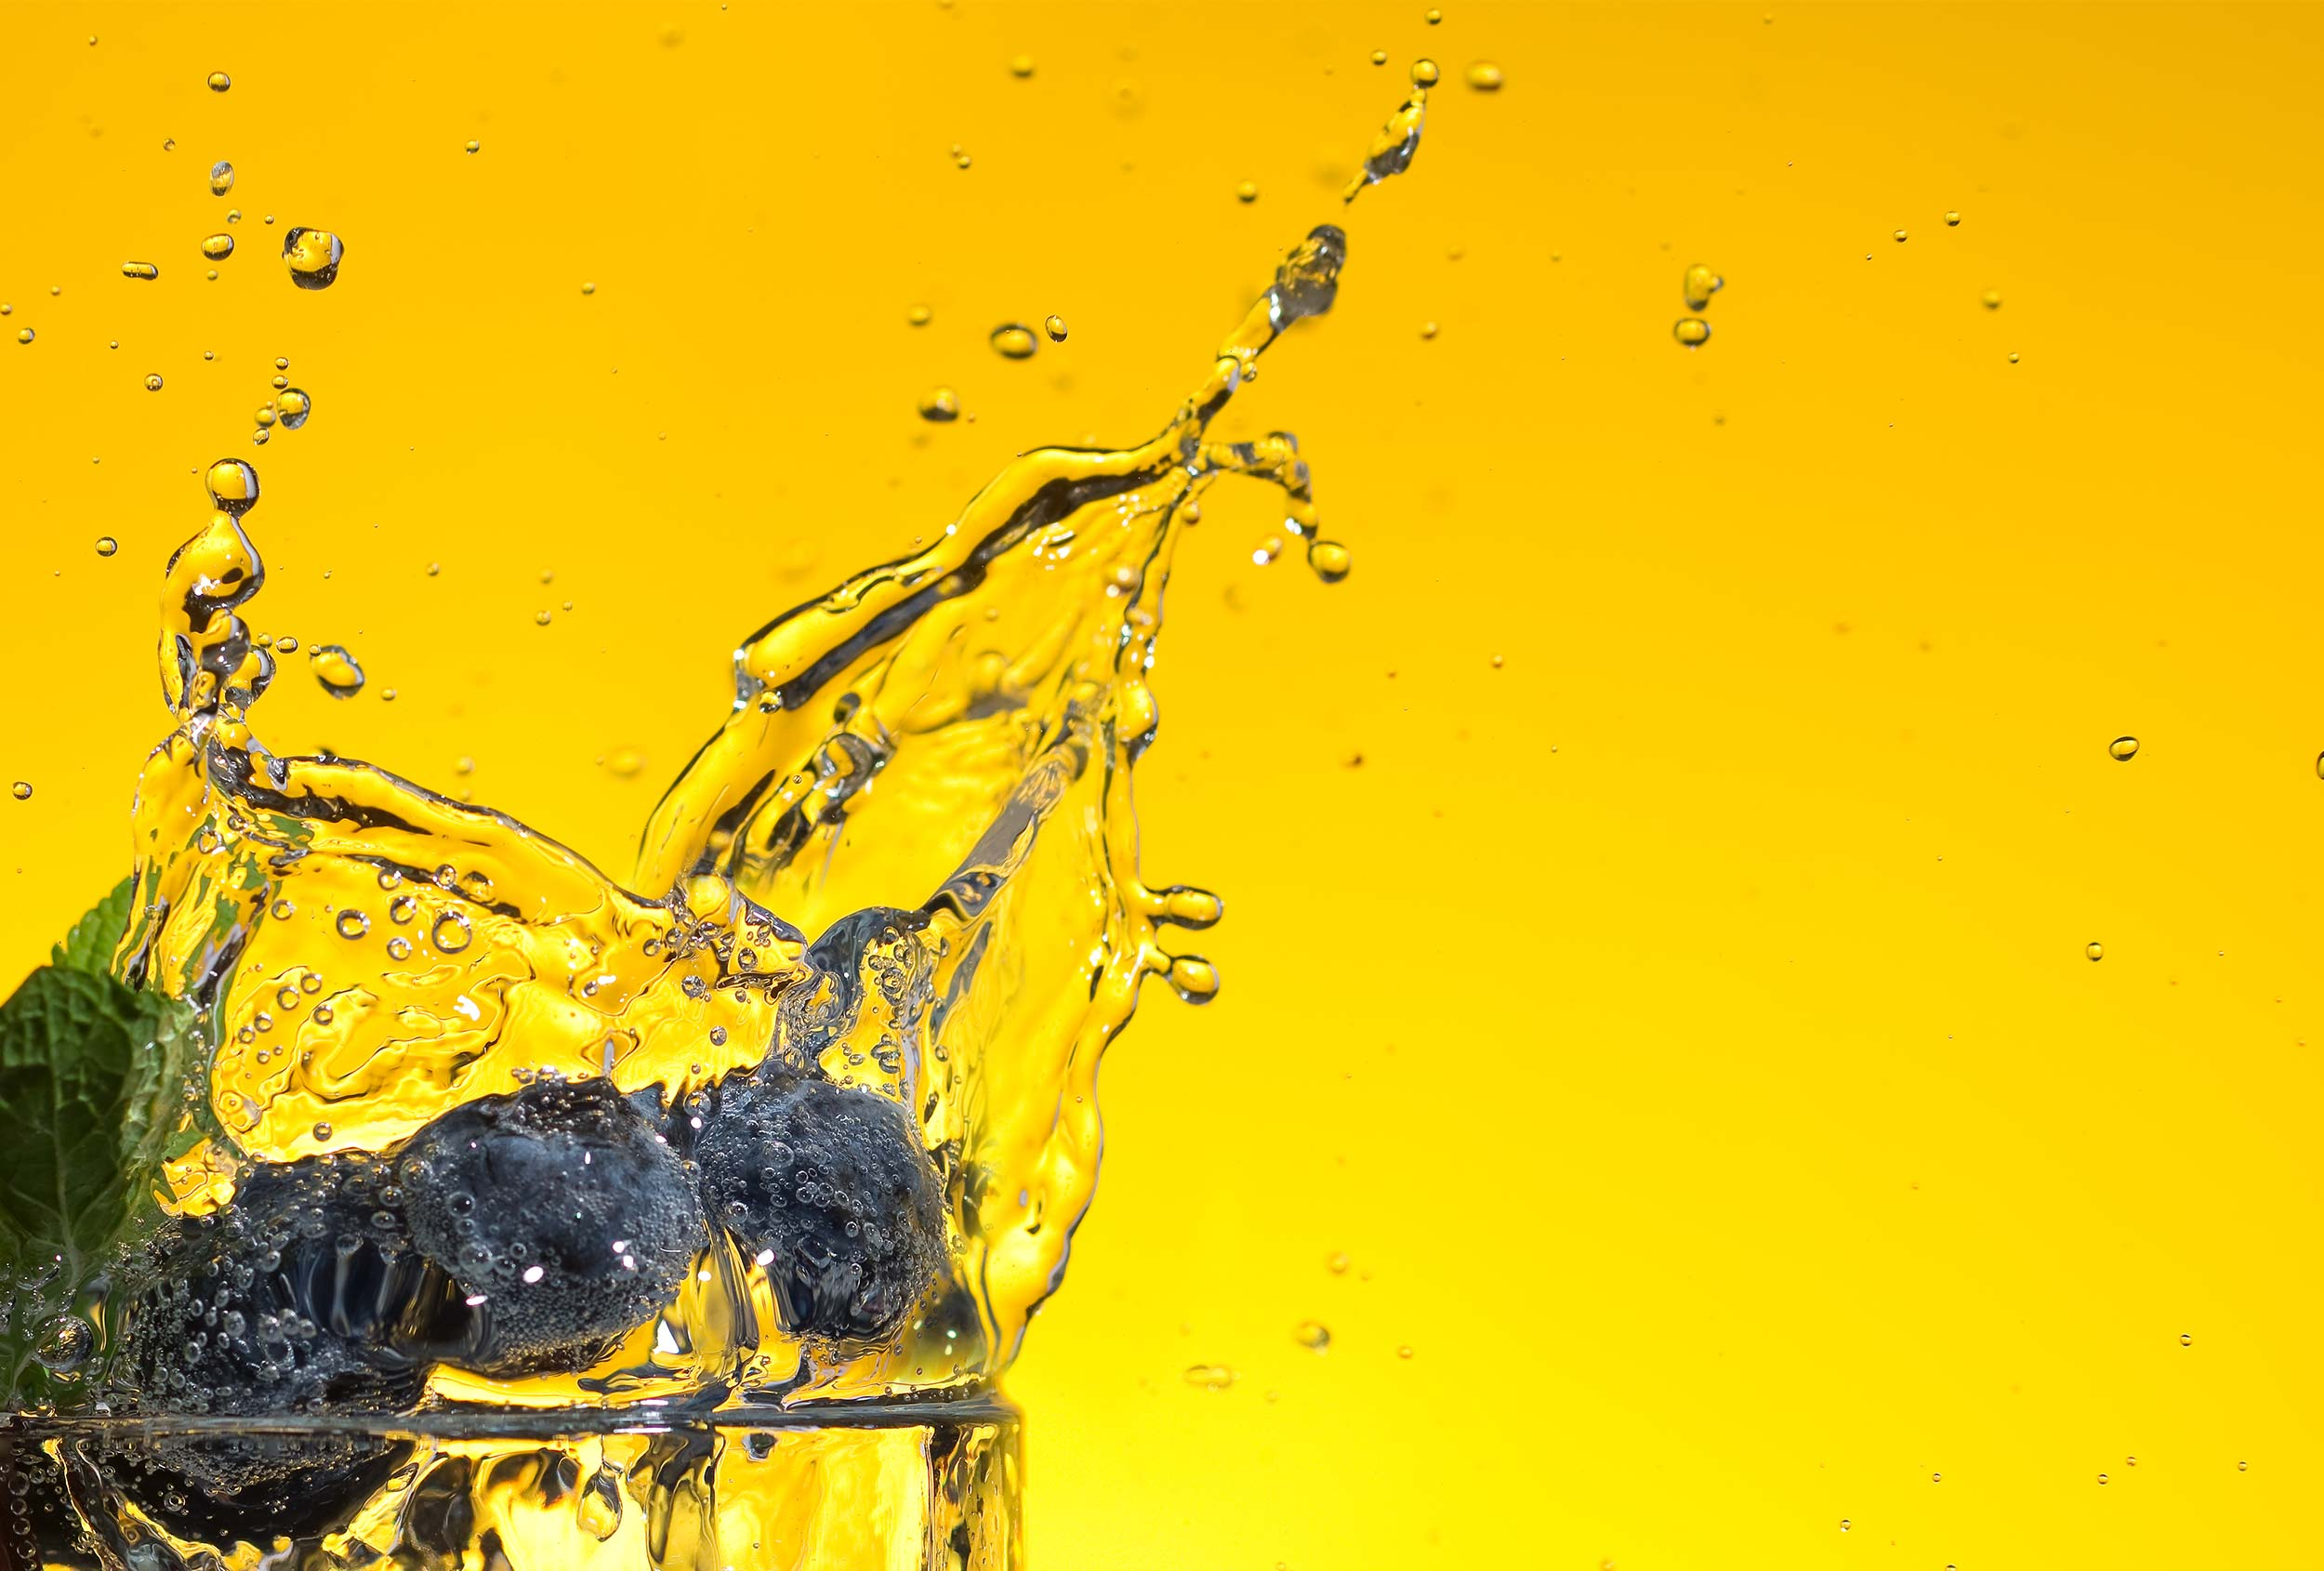 Close up tonic splash photography by Distil Studio, designed to promote Belu's work with WaterAid.